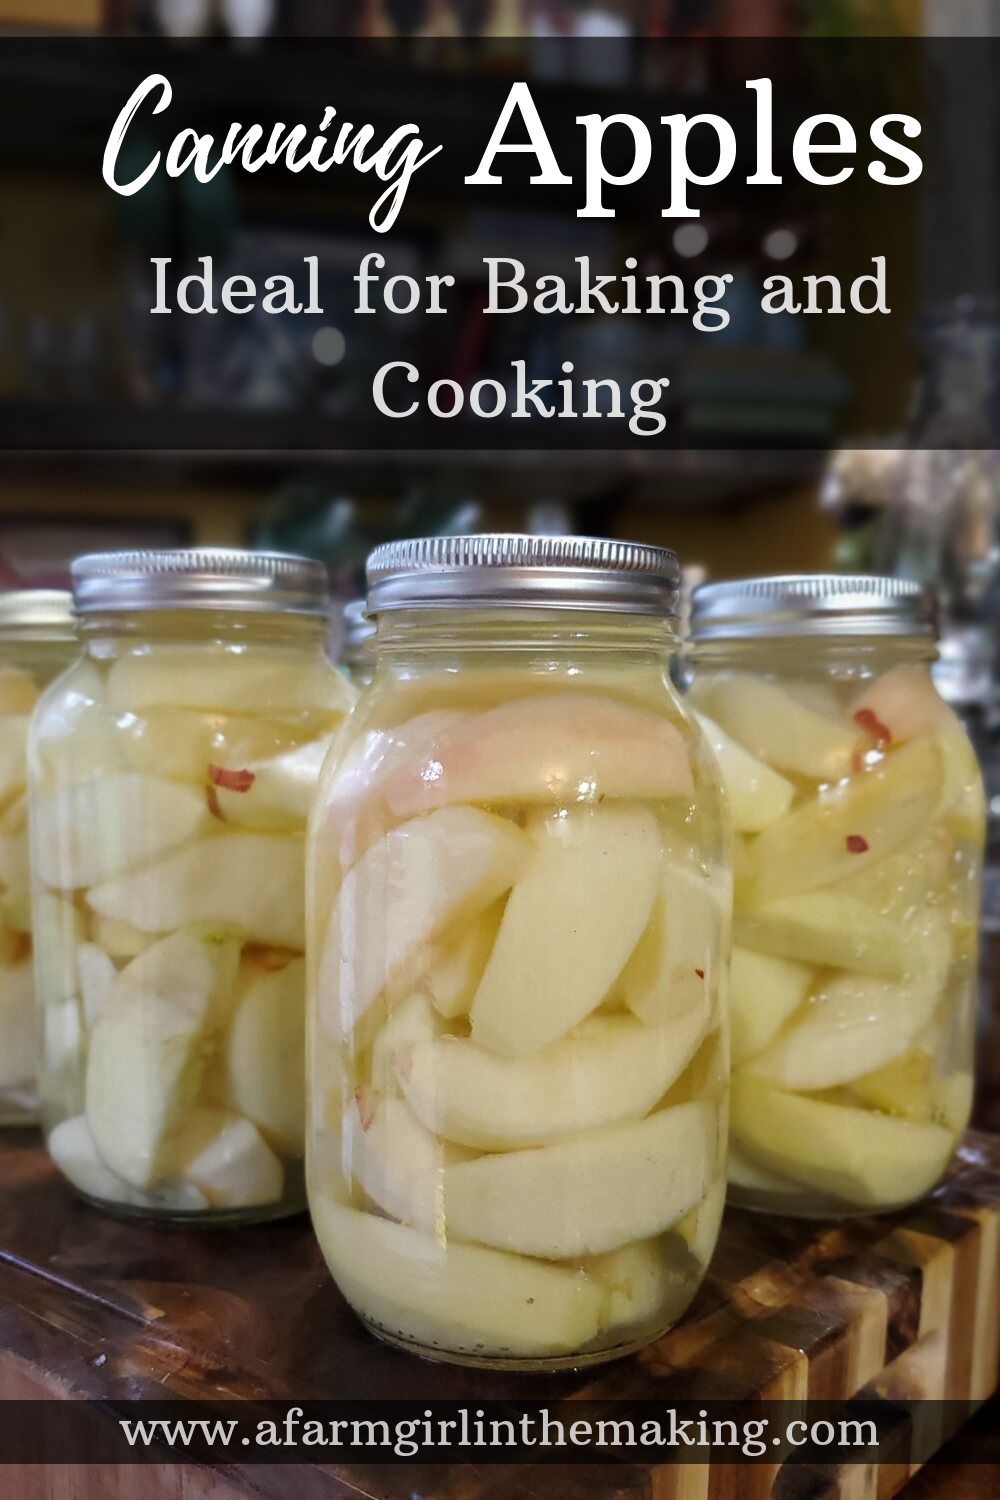 How To Can Apples Canning Apple Slices For Cooking And Baking Canning Recipes Canning Apples Canning Food Preservation